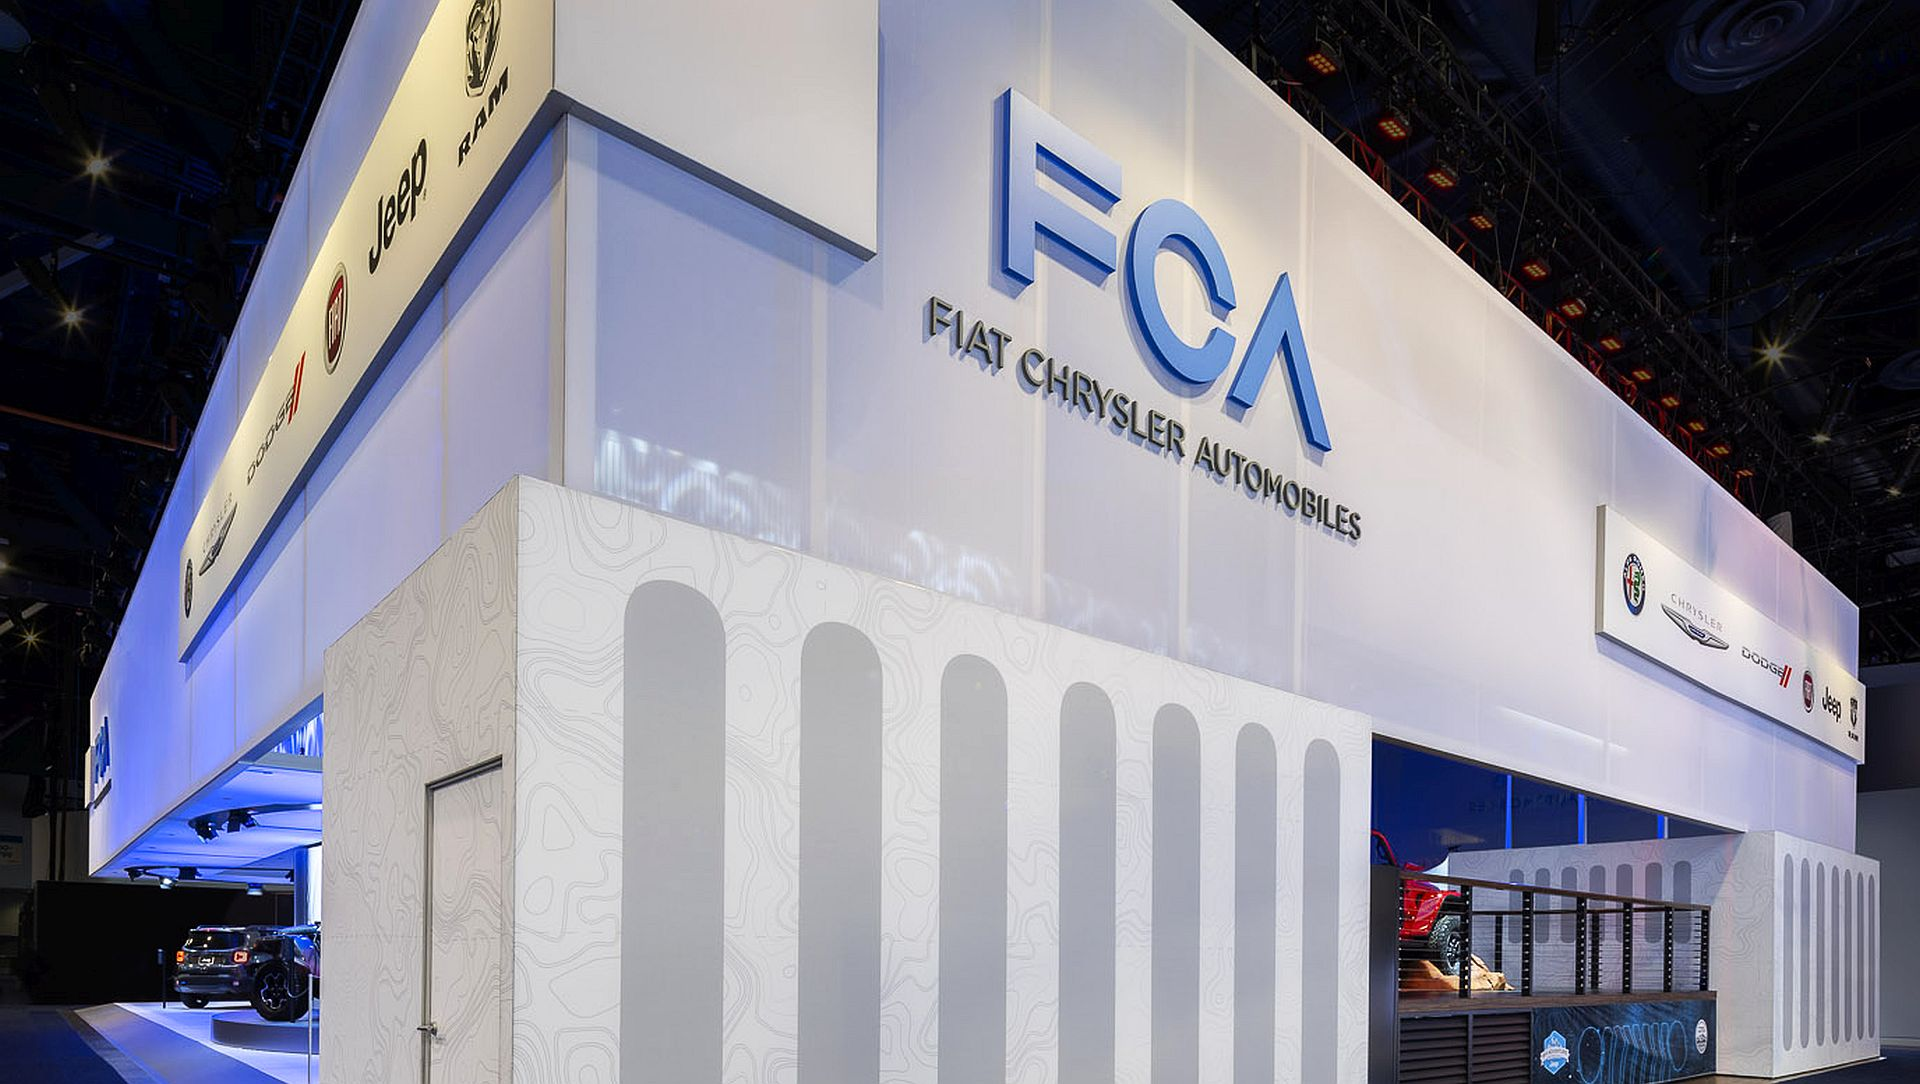 FCA at CES canopy by Moss